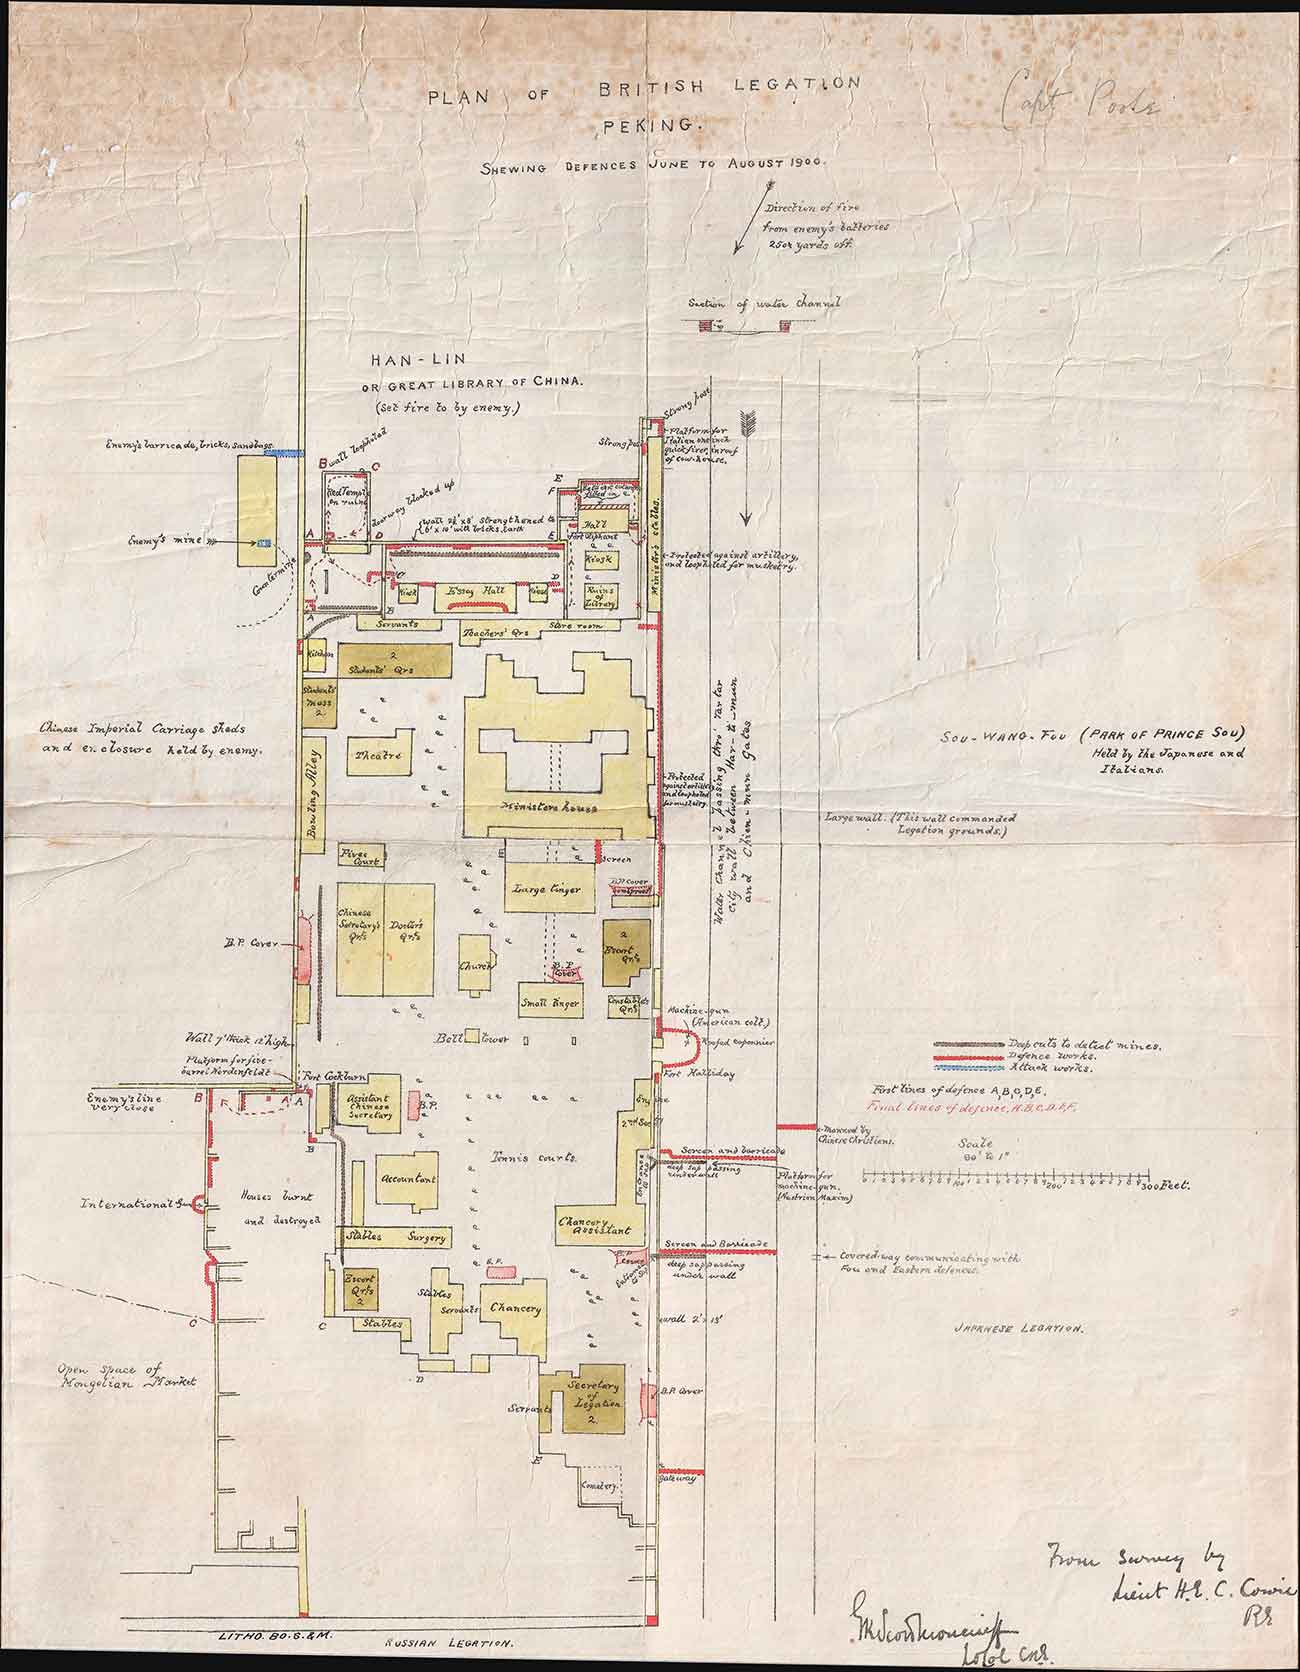 Henry Edward Colvin Cowie, Plan of British Legation Peking Shewing Defences June to August 1900, 21.5 x 17 in. The Huntington Library, Art Collections, and Botanical Gardens.